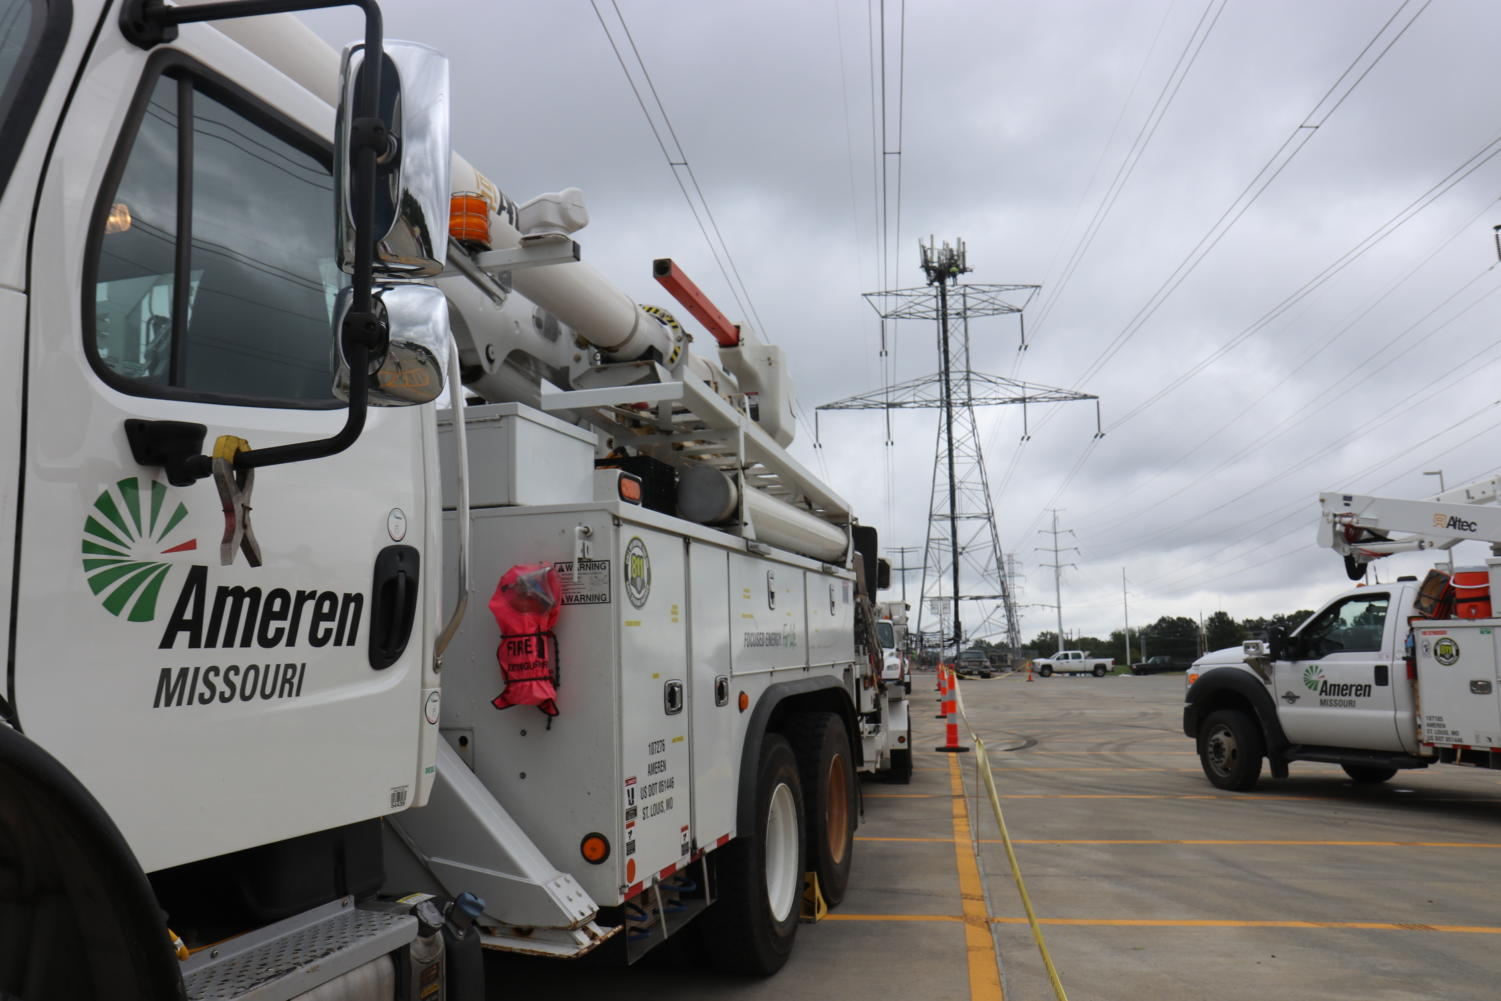 Ameren utility trucks line the MHS parking lot. Twelve trucks and 21 employees were dispatched overnight on Wednesday, Aug. 21, to repair the damaged power lines that run through the property.